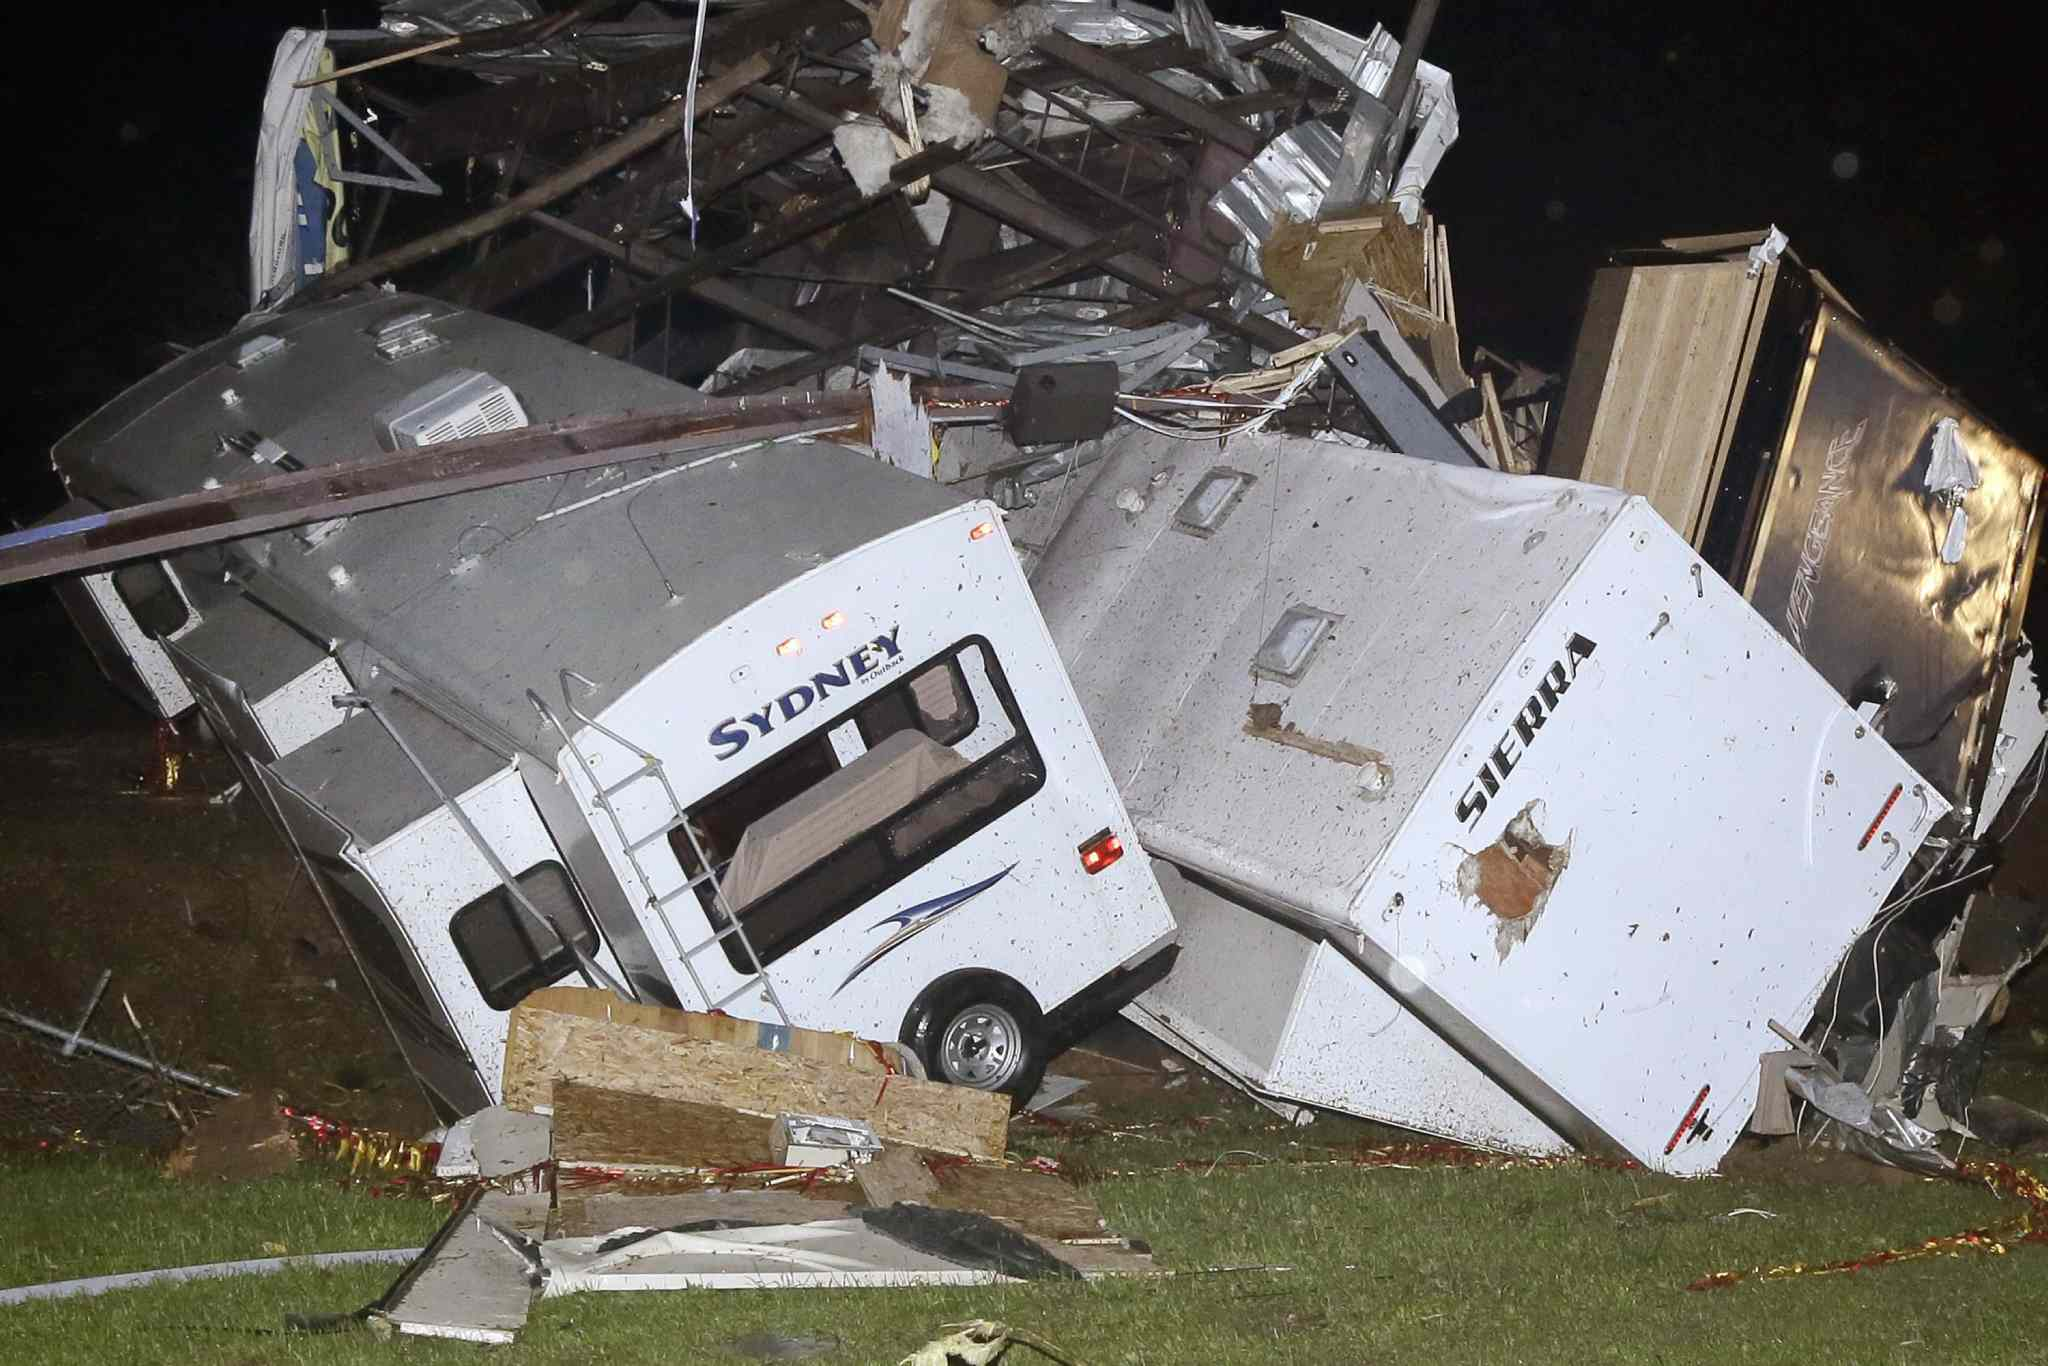 Travel trailers and motor homes are piled on top of each other at Mayflower RV in Mayflower, Ark., Sunday, after a powerful storm system rumbled through the central and southern United States on Sunday, spawning tornadoes.